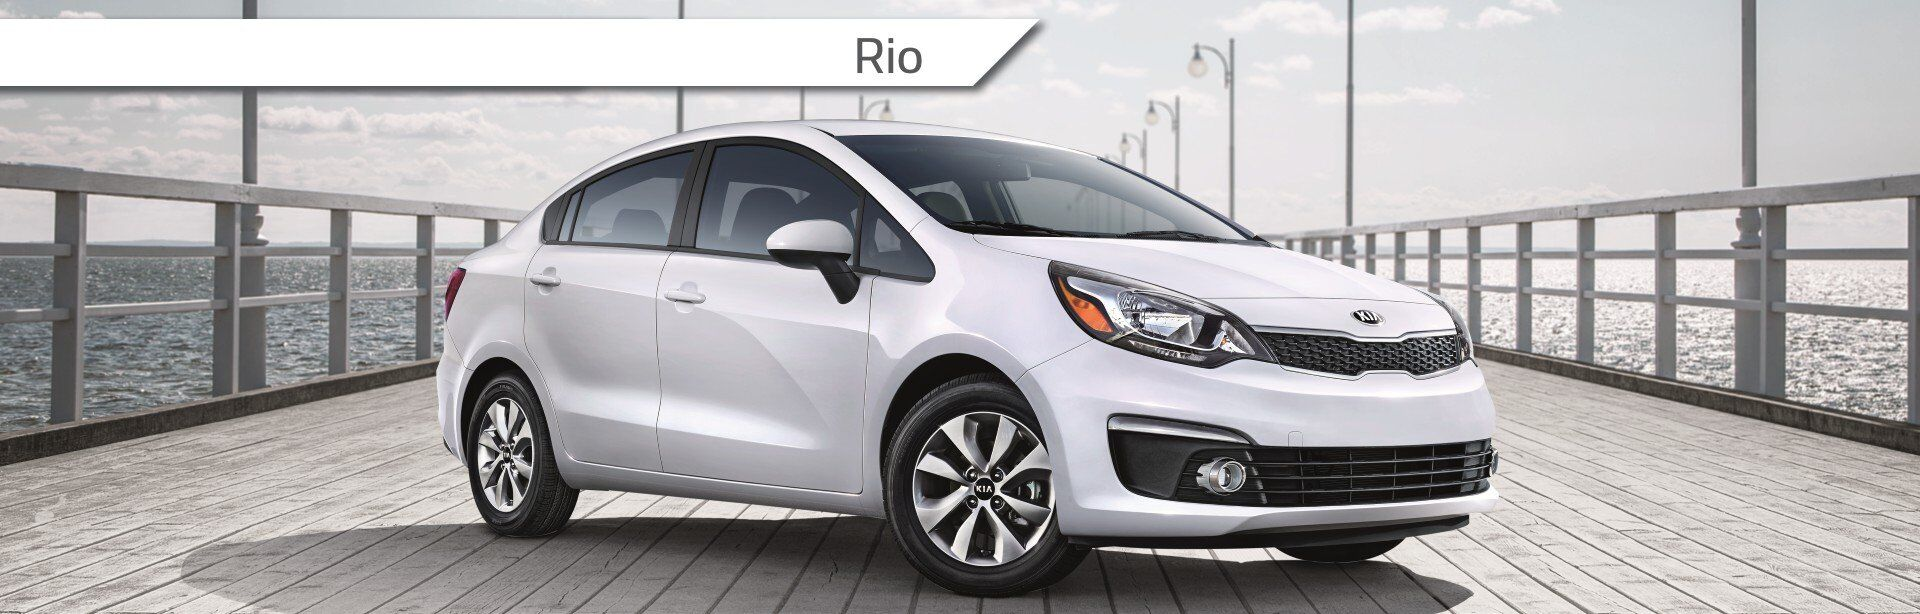 New Kia Rio at John L Sullivan's Roseville Kia